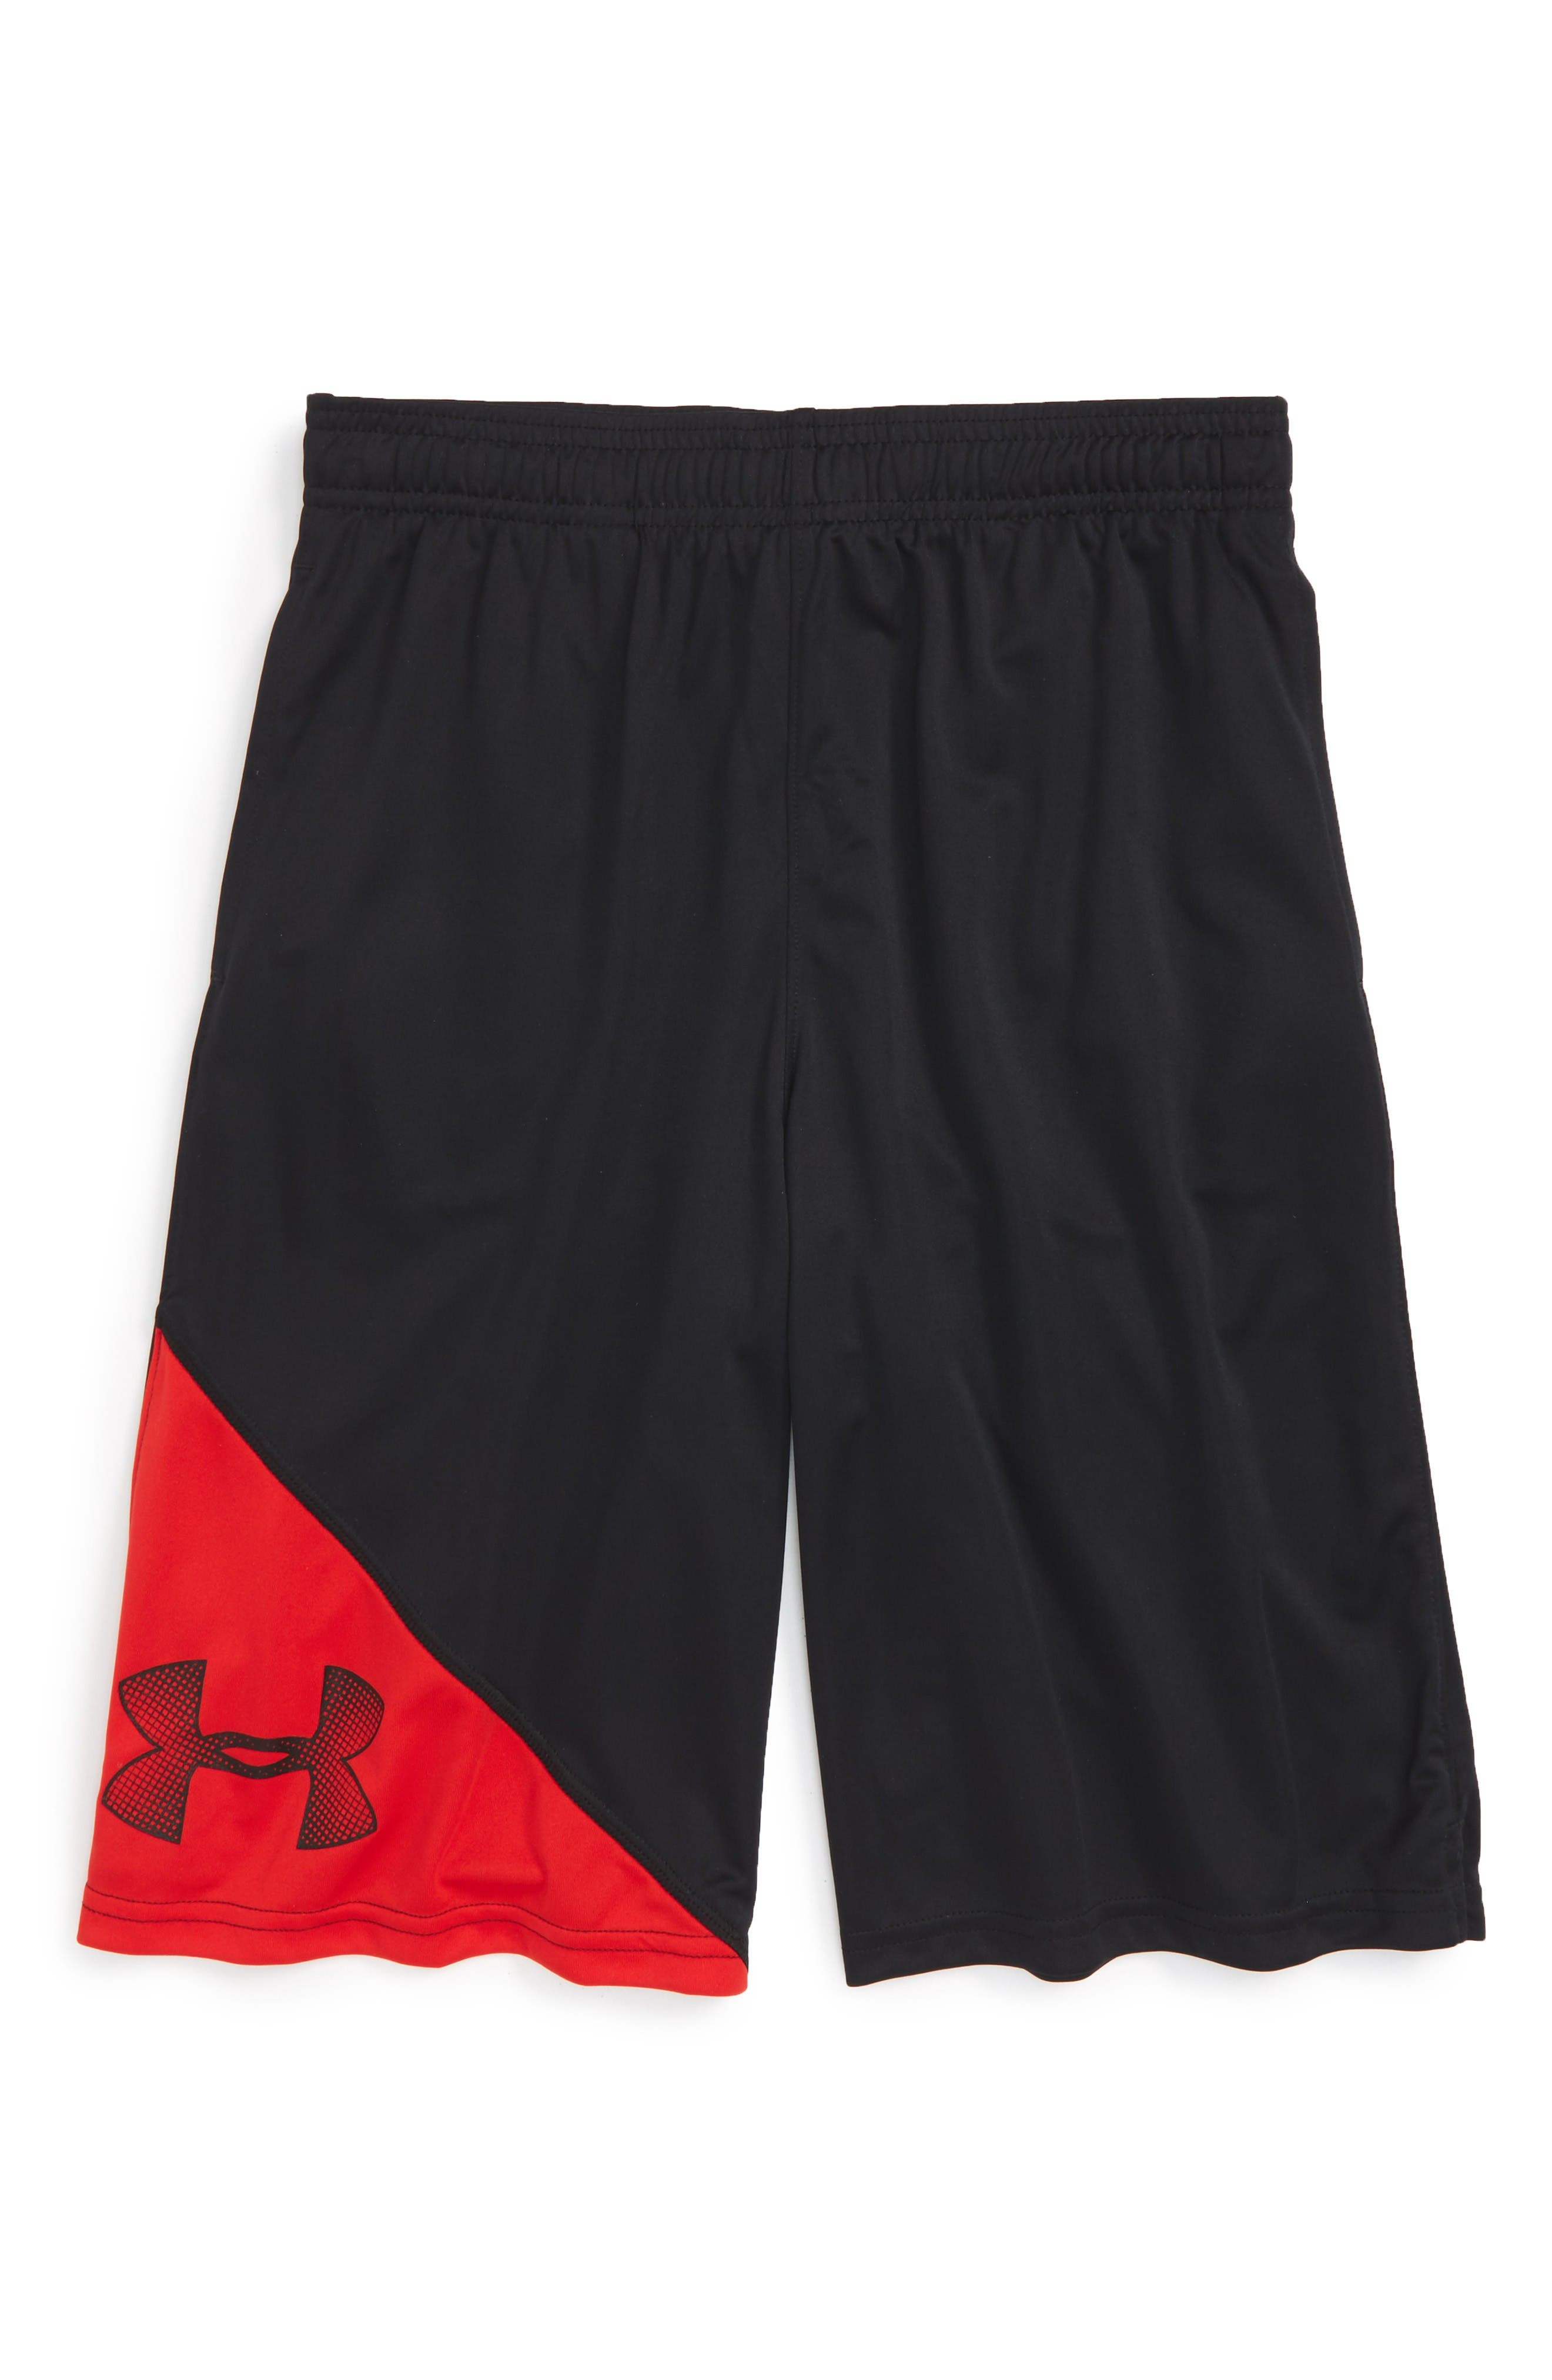 Alternate Image 1 Selected - Under Armour 'Tech™' Athletic Shorts (Little Boys & Big Boys)